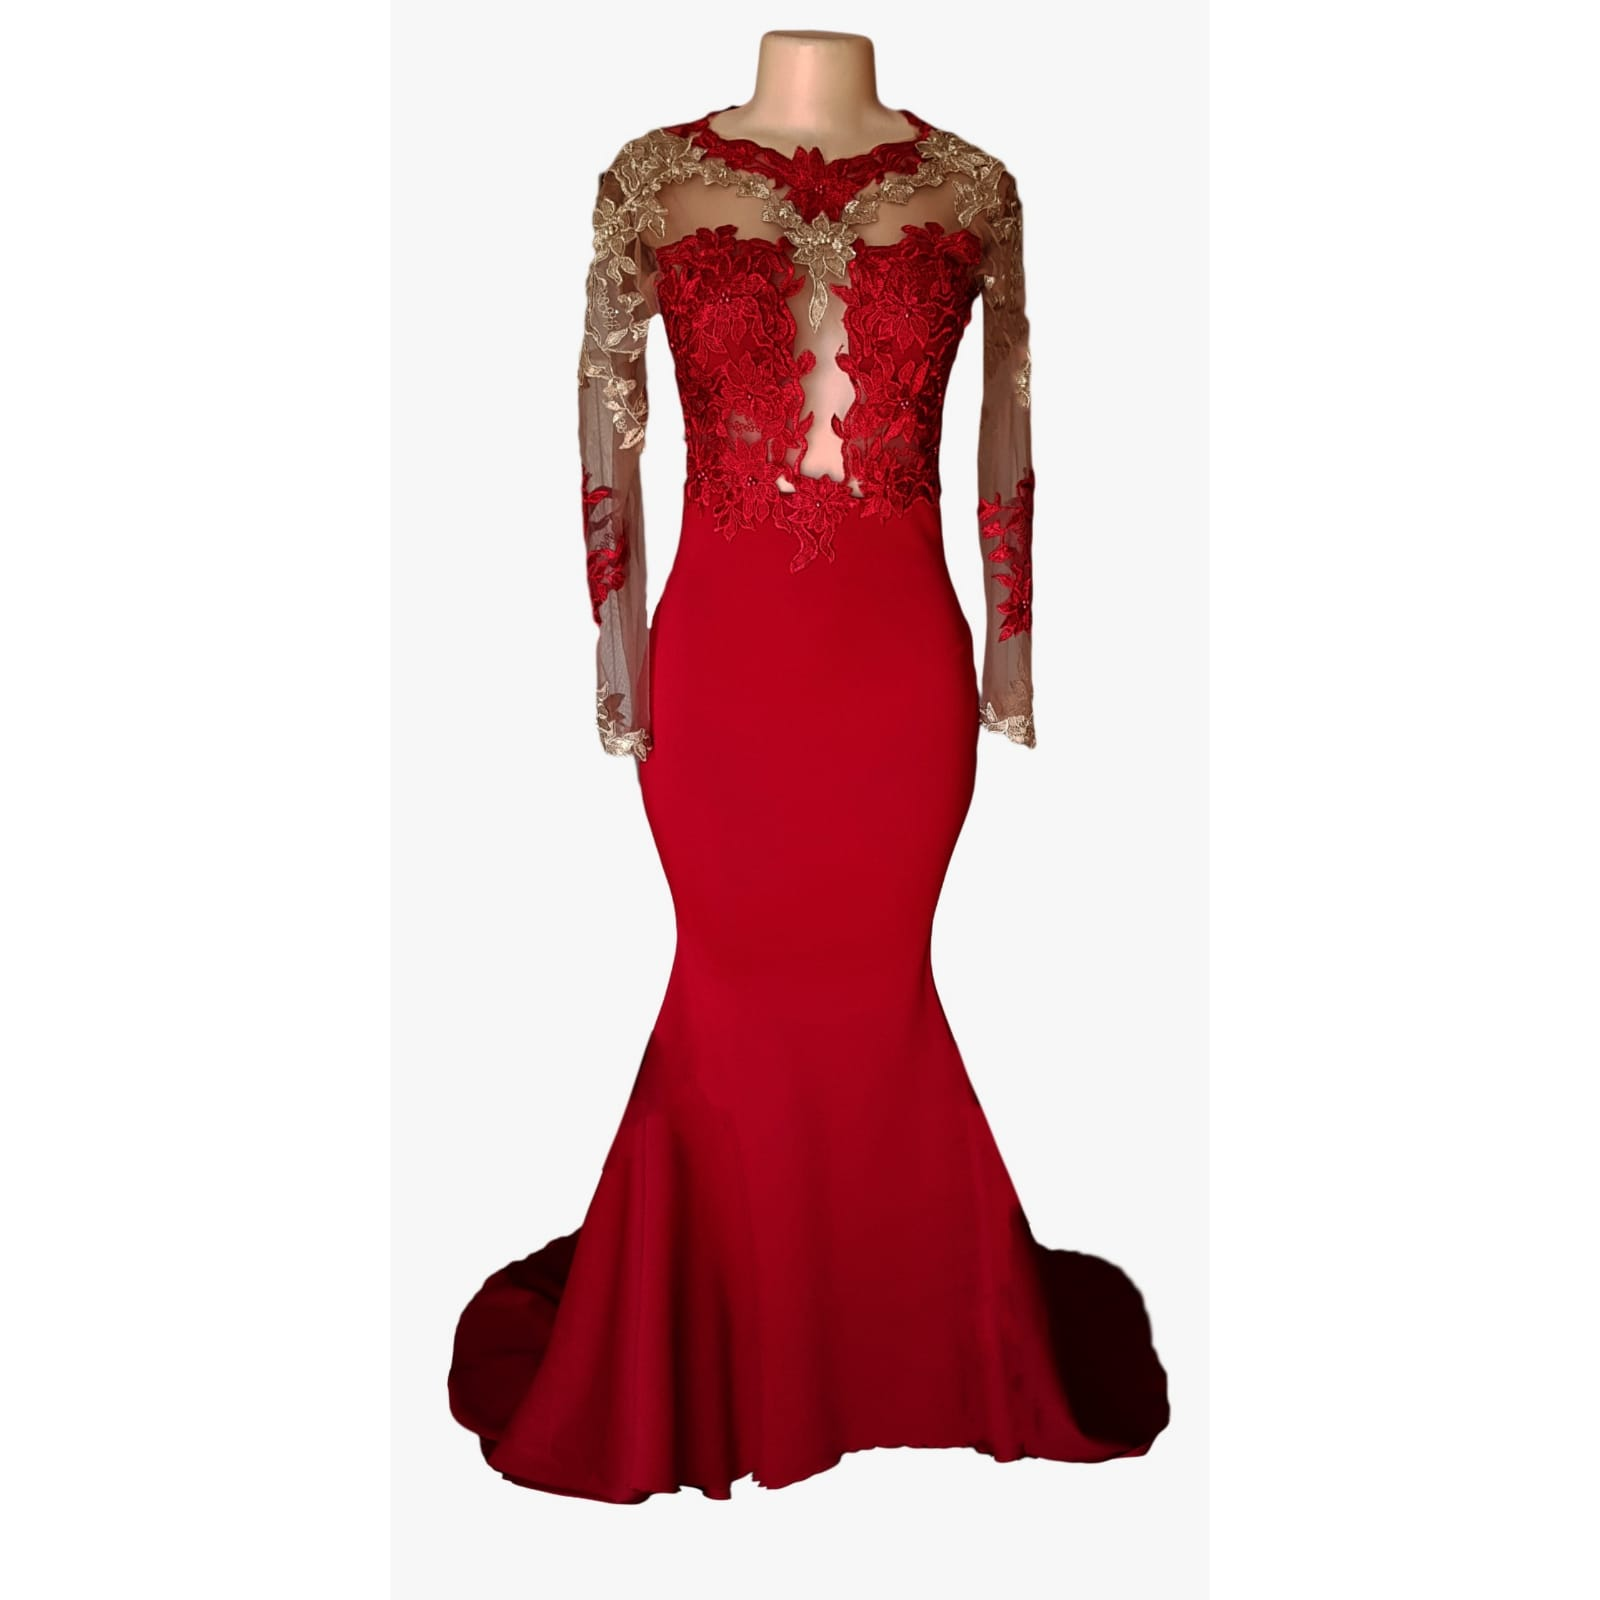 Red and gold lace soft mermaid matric dance dress 8 red and gold lace soft mermaid matric dance dress, illusion lace bodice and sleeves with a diamond shaped open back and a train.